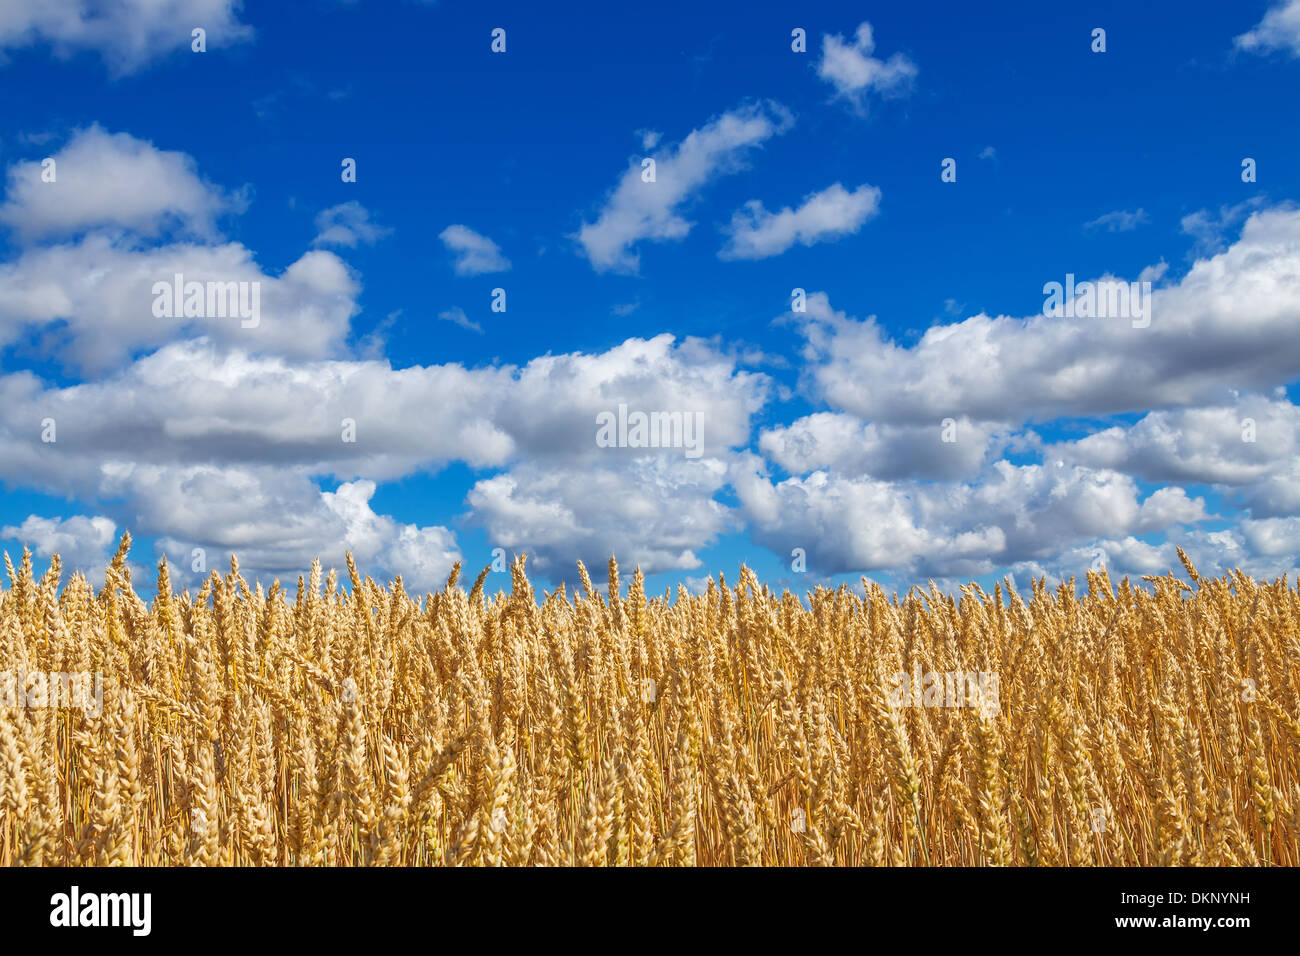 Close-up of golden wheat field, under blue sky with clouds.  - Stock Image